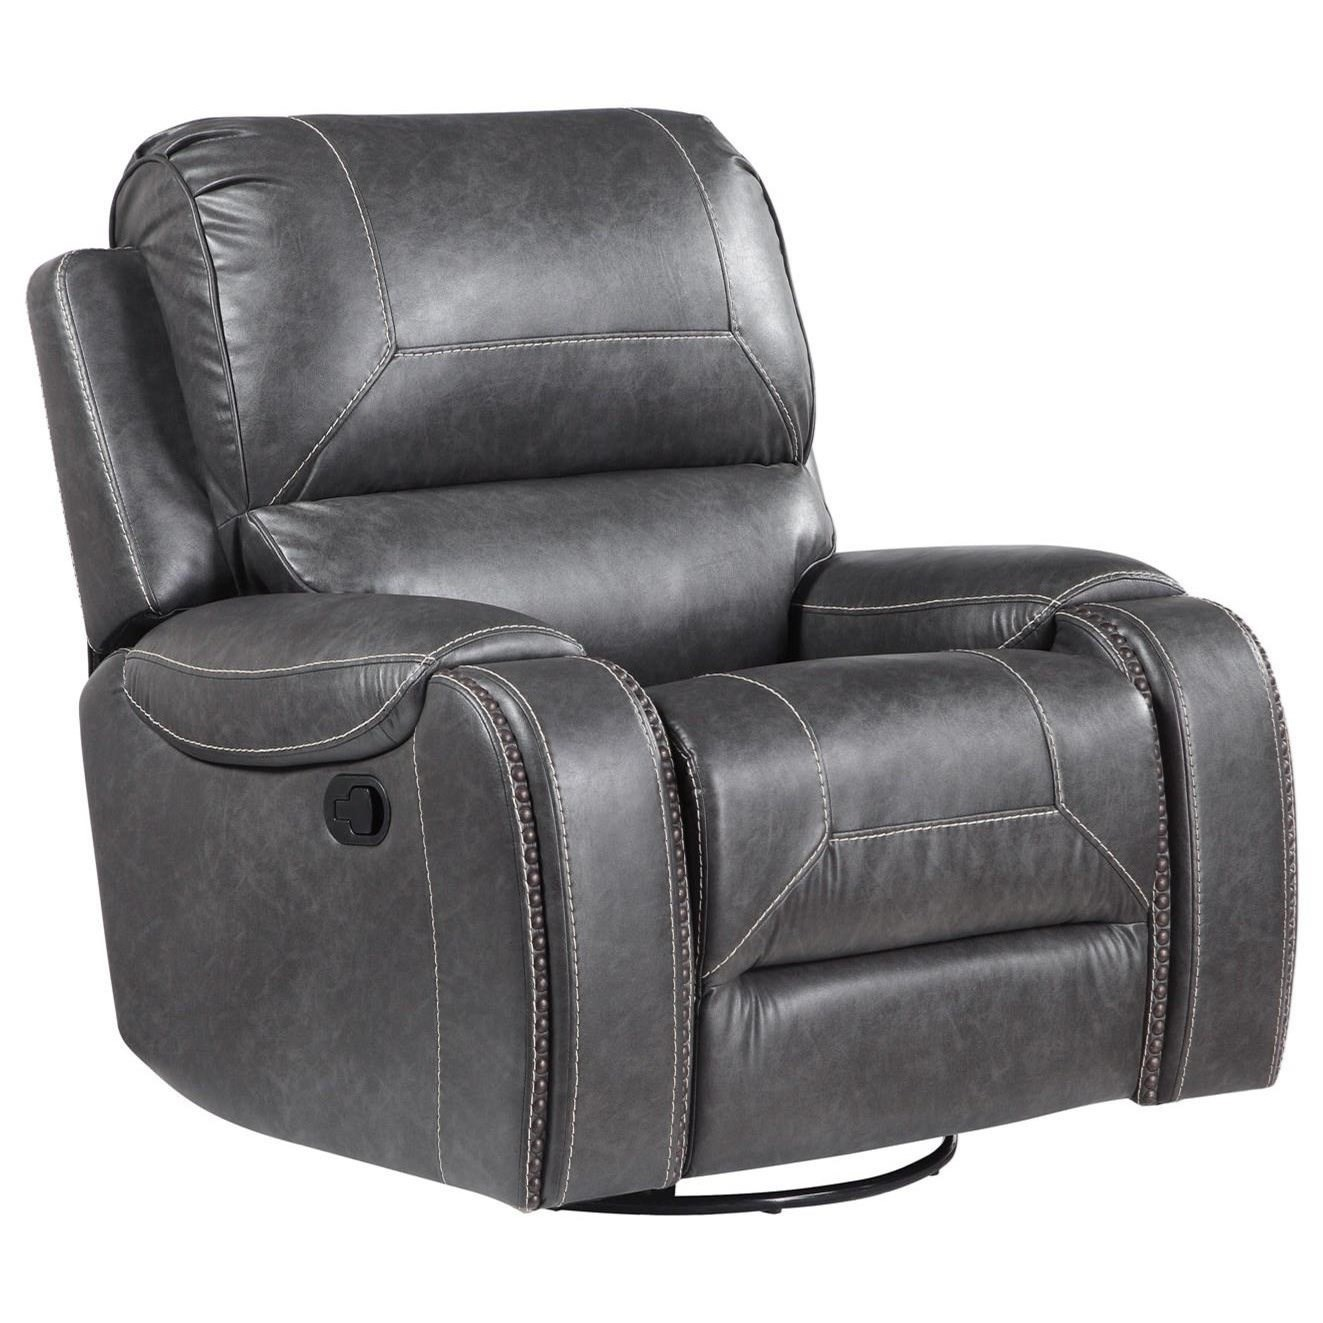 Star Keily Ke800cg Manual Motion Swivel Glider Recliner Chair Efo Furniture Outlet Recliners